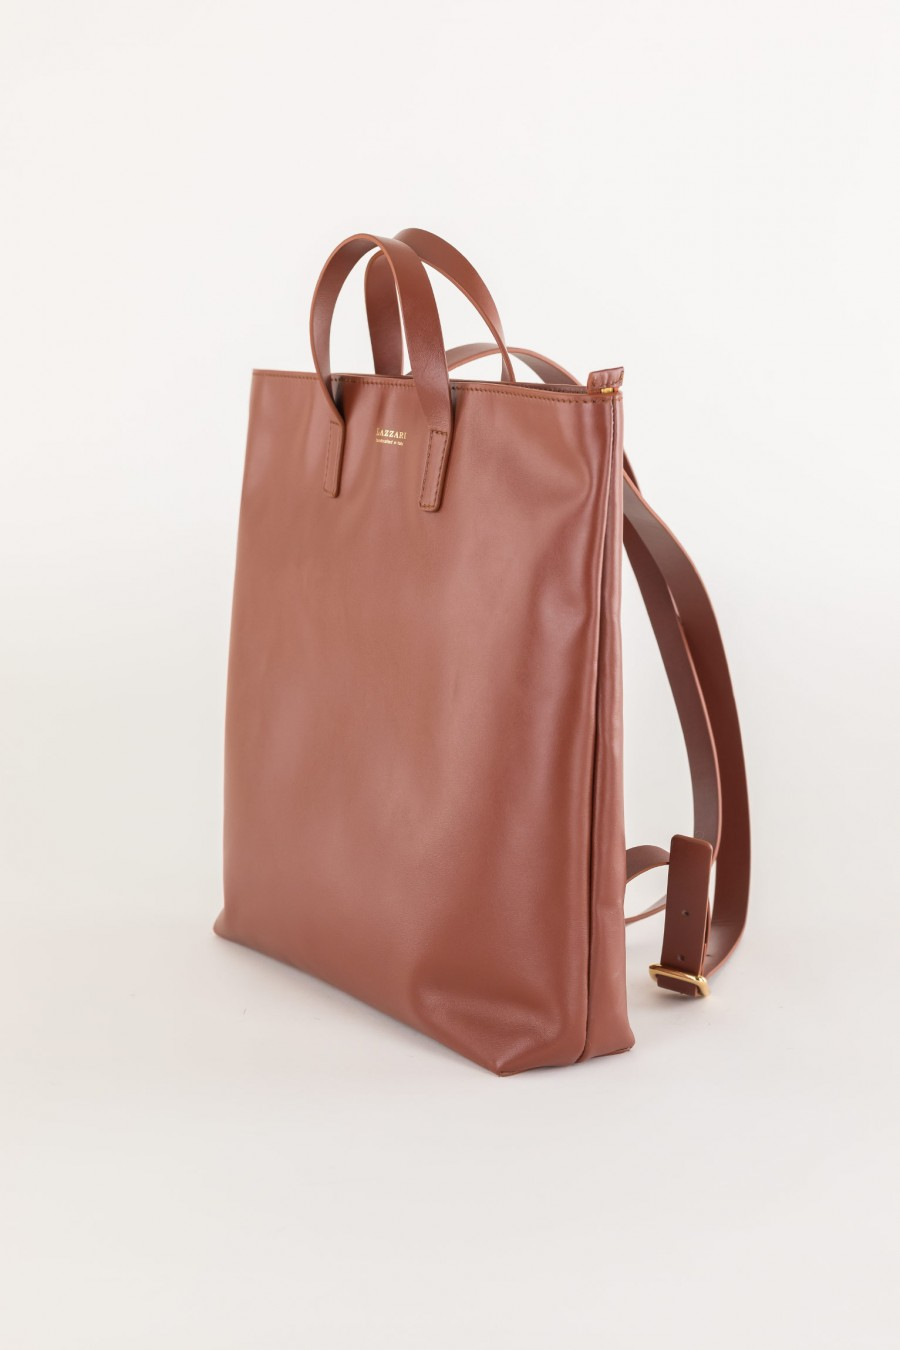 elegant brown leather backpack